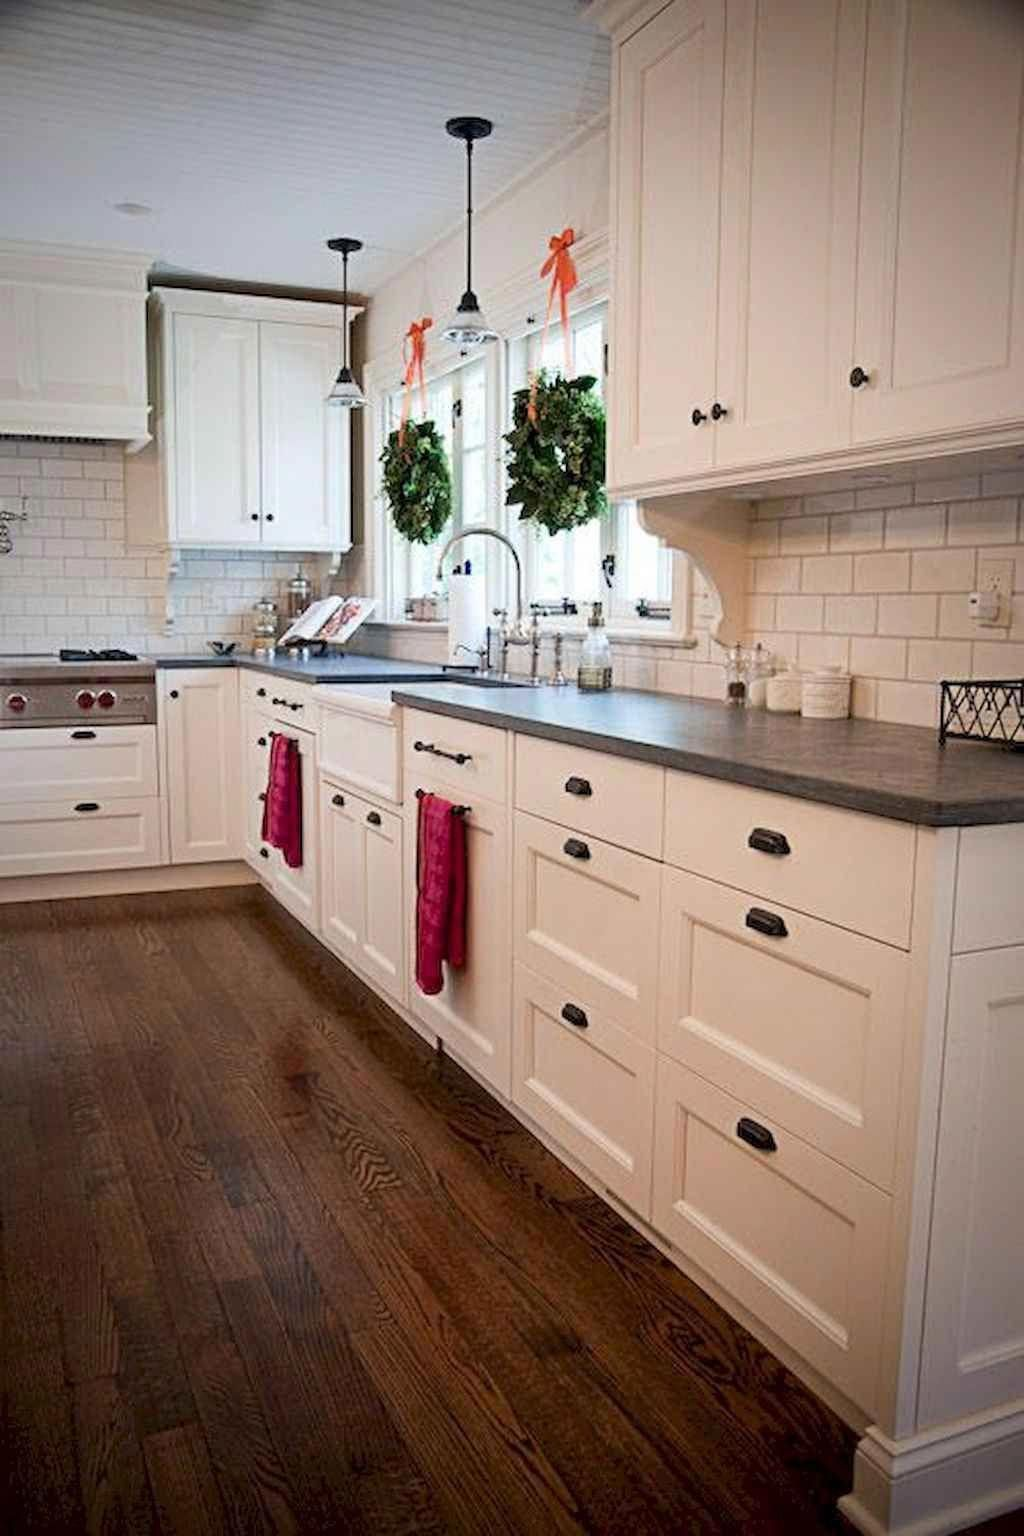 10x10 Kitchen Remodel: This Appears Outstanding 10x10 Kitchen Remodel (With